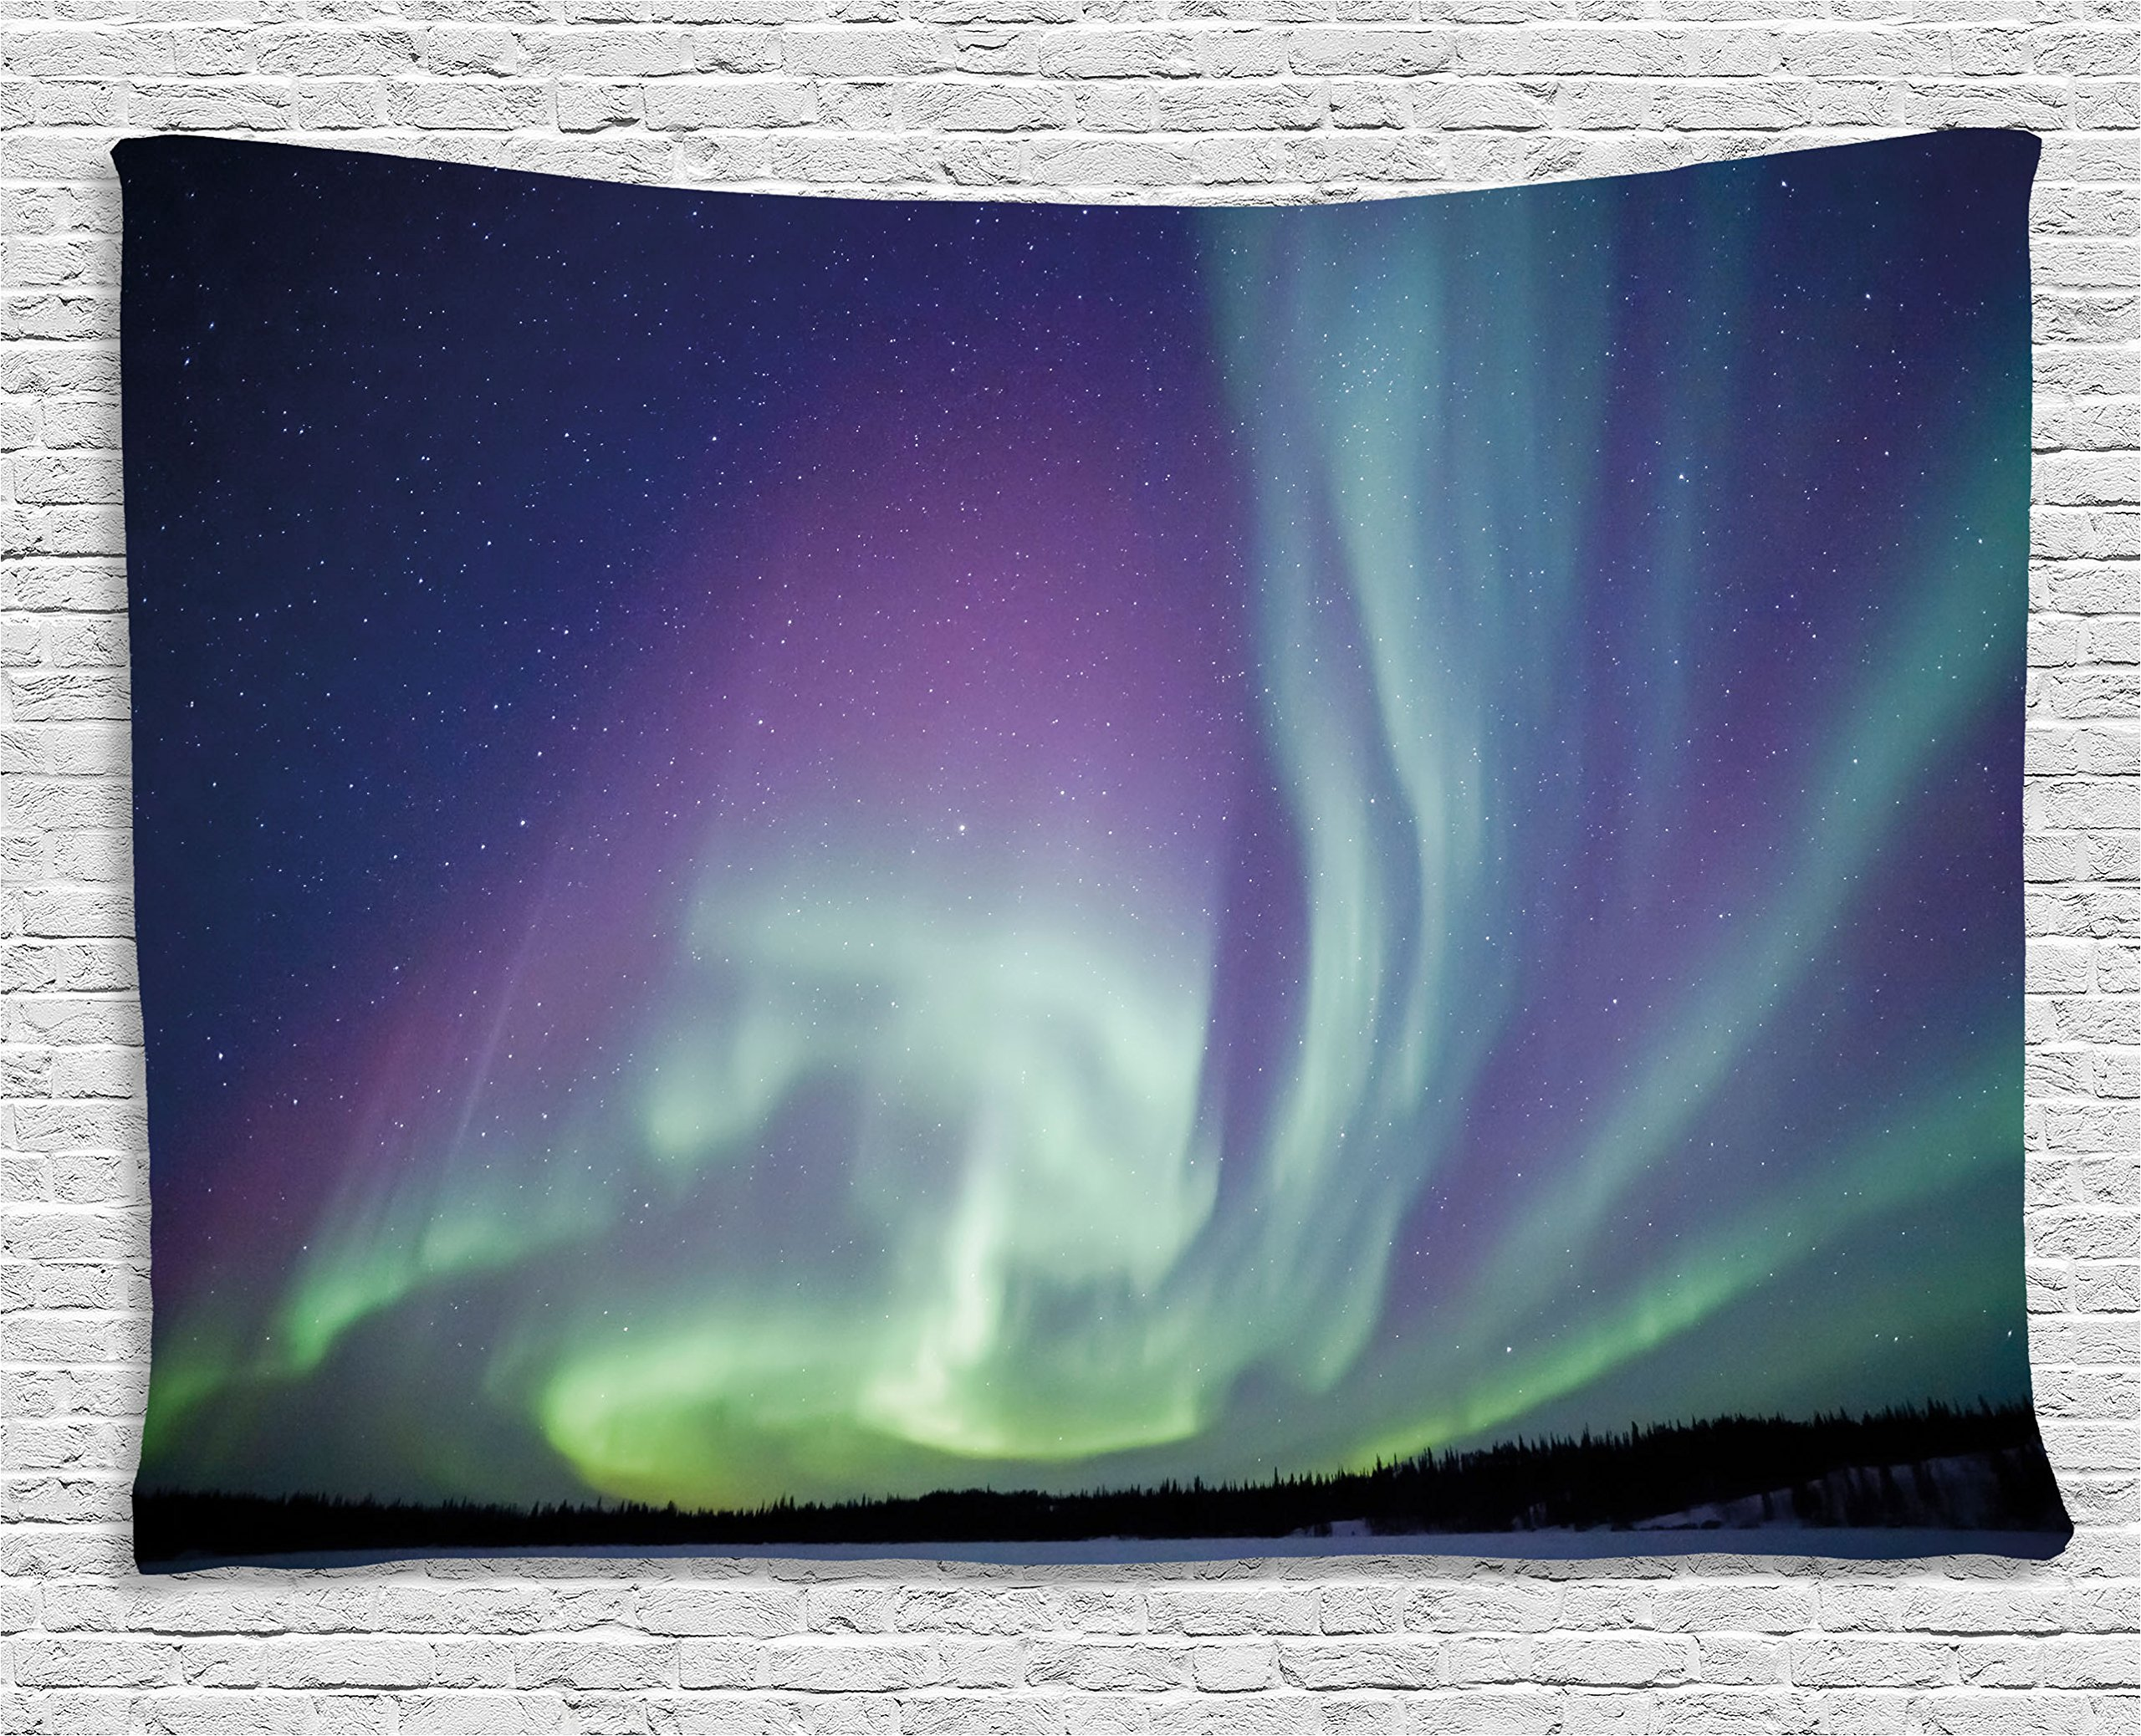 Ambesonne Northern Lights Tapestry, Exquisite Atmosphere Solar Starry Sky Calming Night Image, Wall Hanging for Bedroom Living Room Dorm, 80 W X 60 L inches, Mint Green Dark Blue Violet